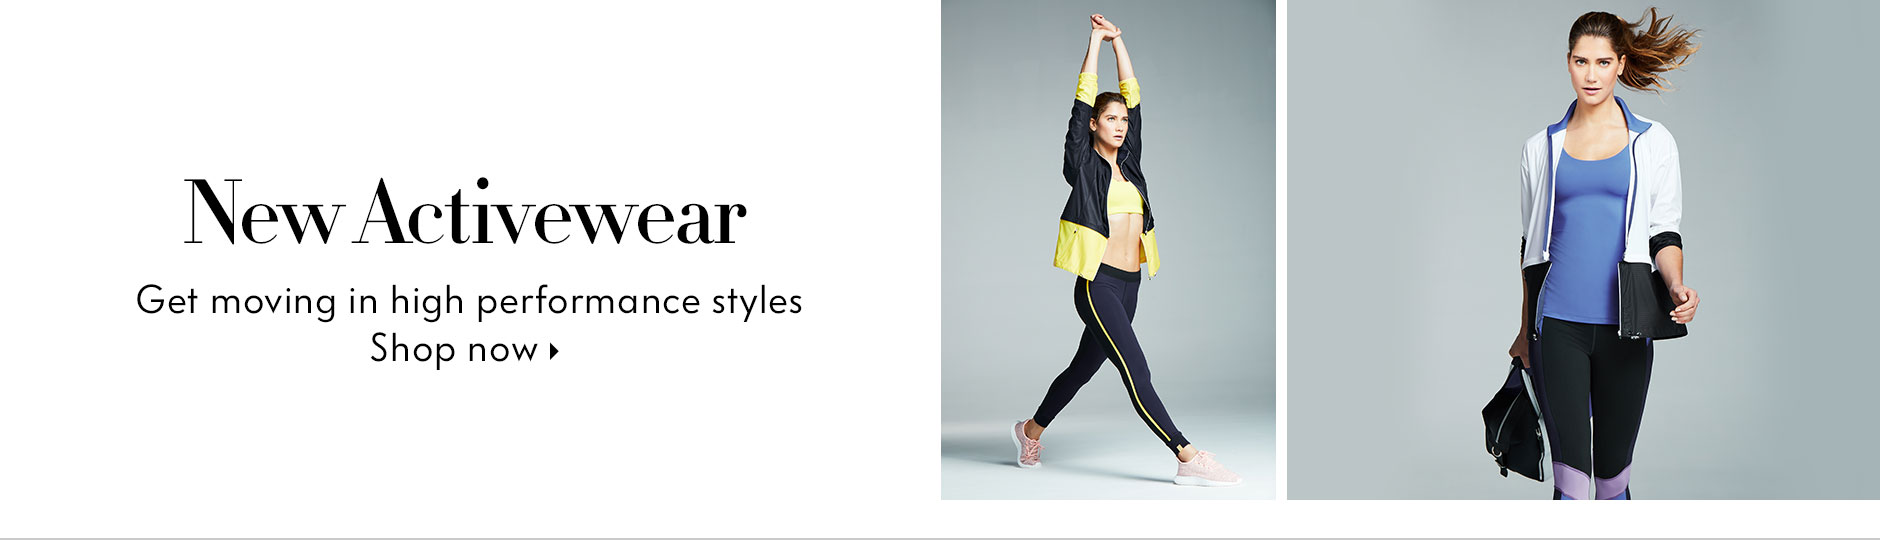 New Activewear - Get moving in high performance styles